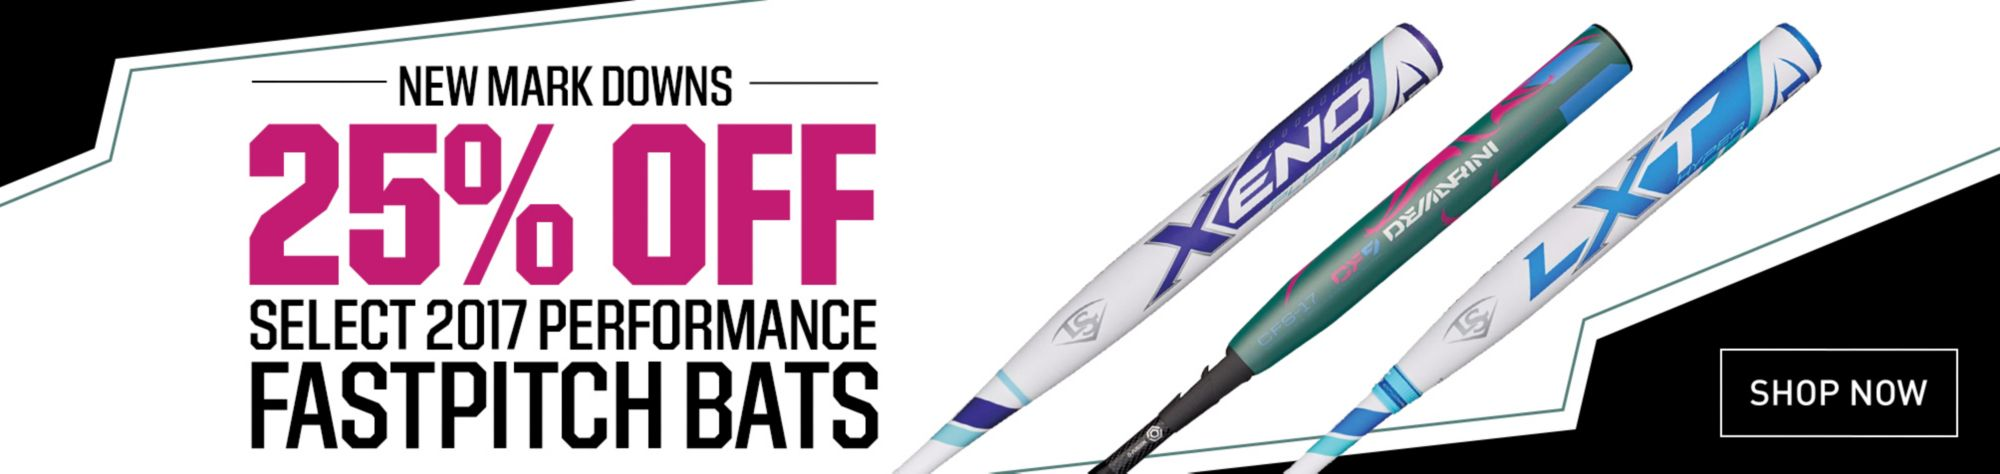 25% Off Select 2017 Performance Fastpitch Bats